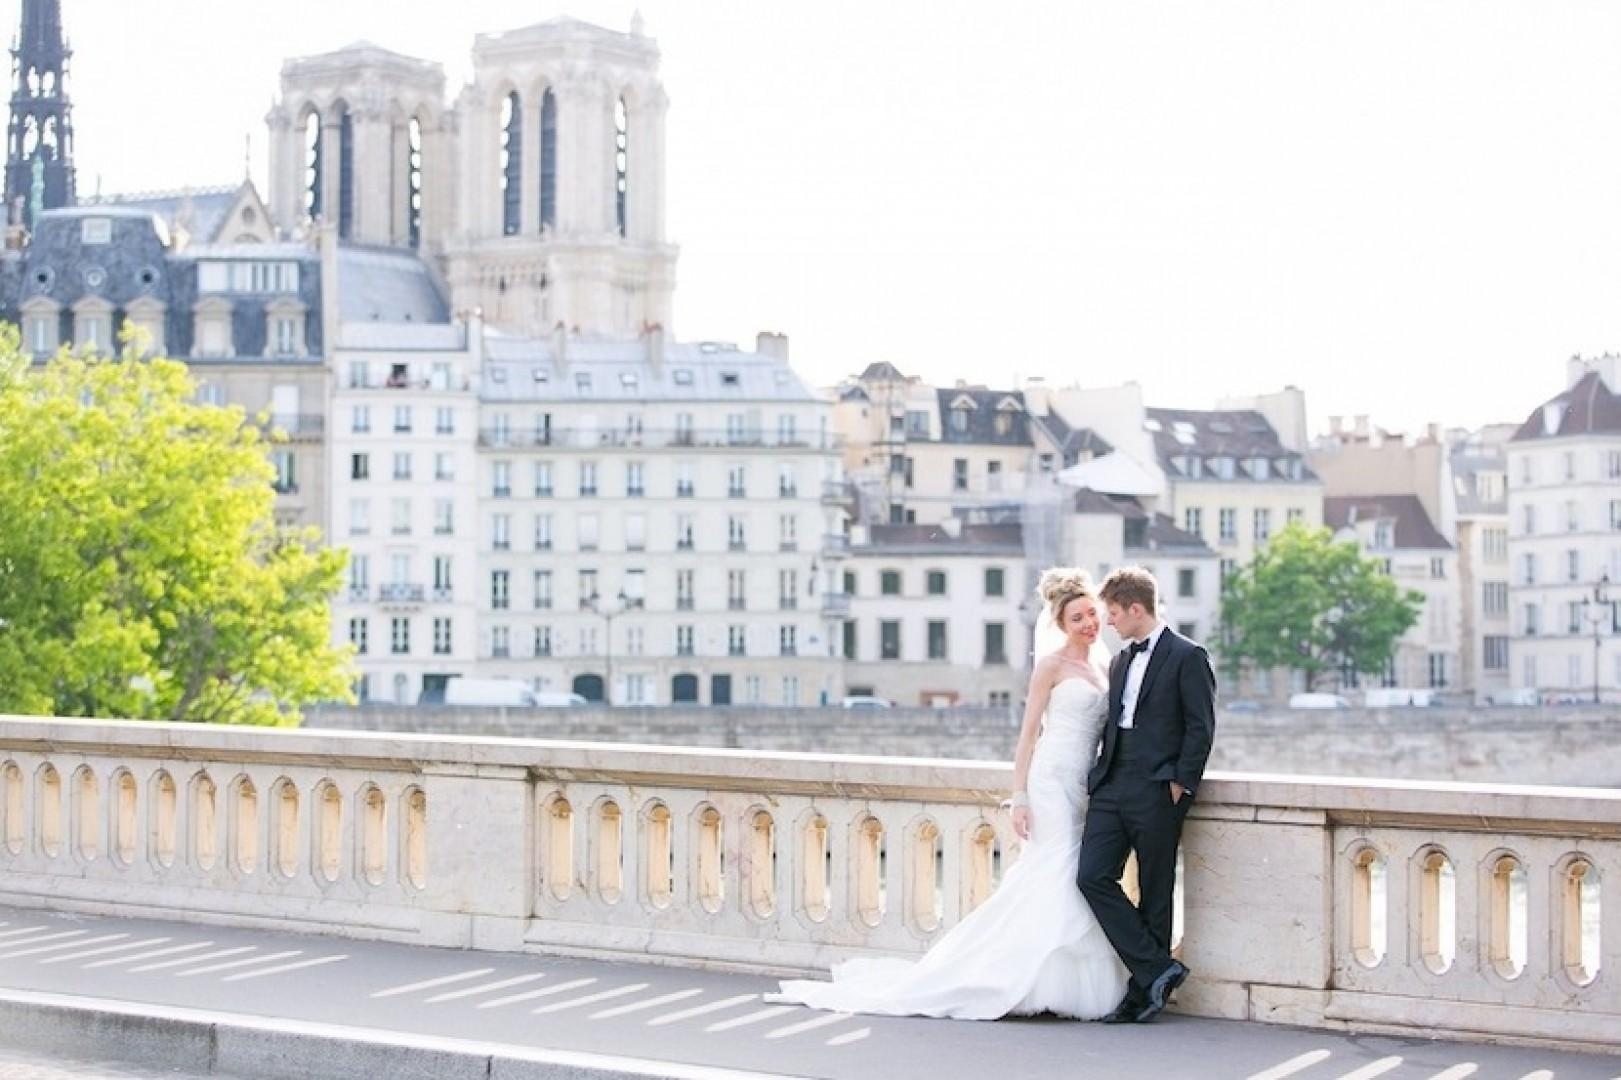 Celebrate your special day in the world's most romantic city!